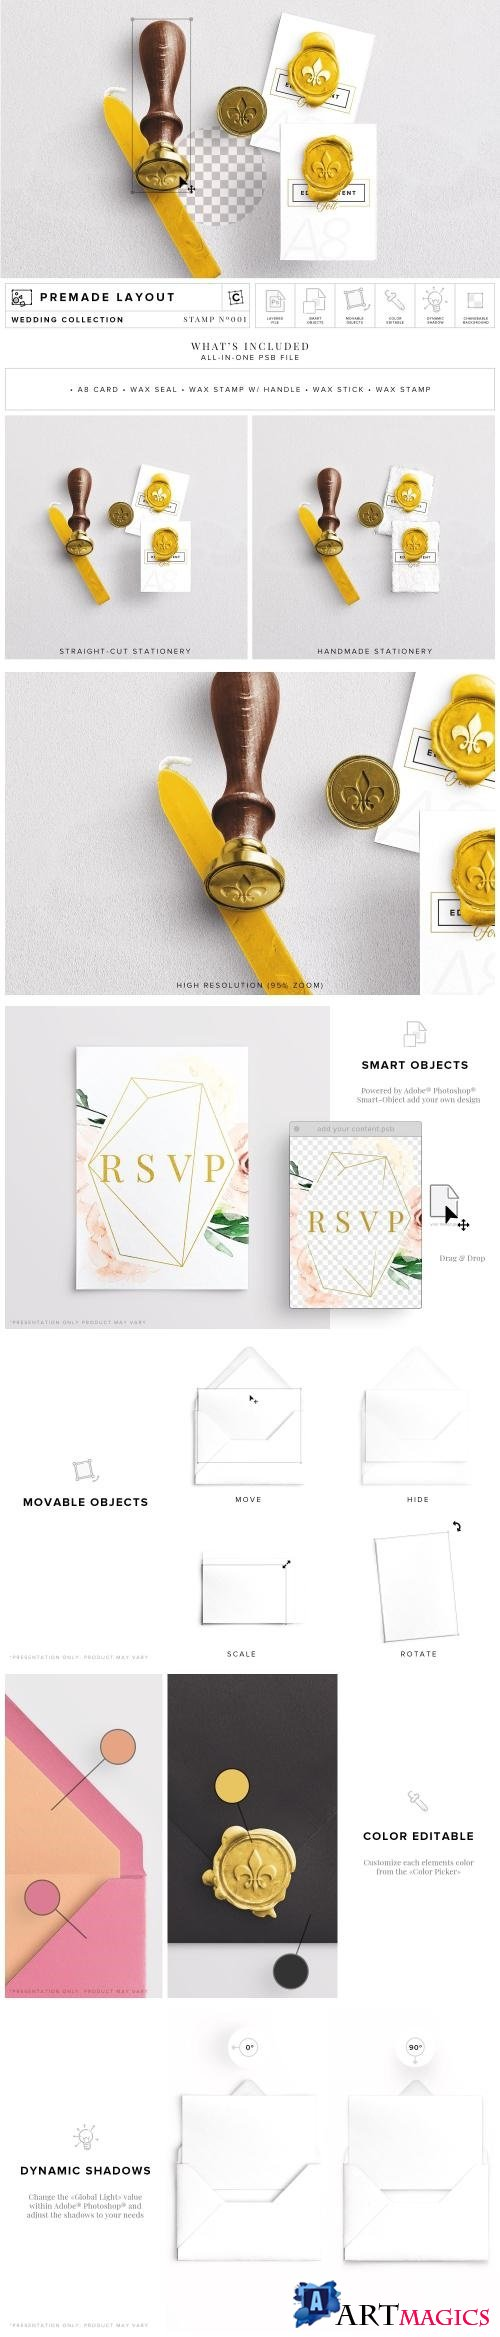 Wax Stamp & A8 Card Mockup - 2763447